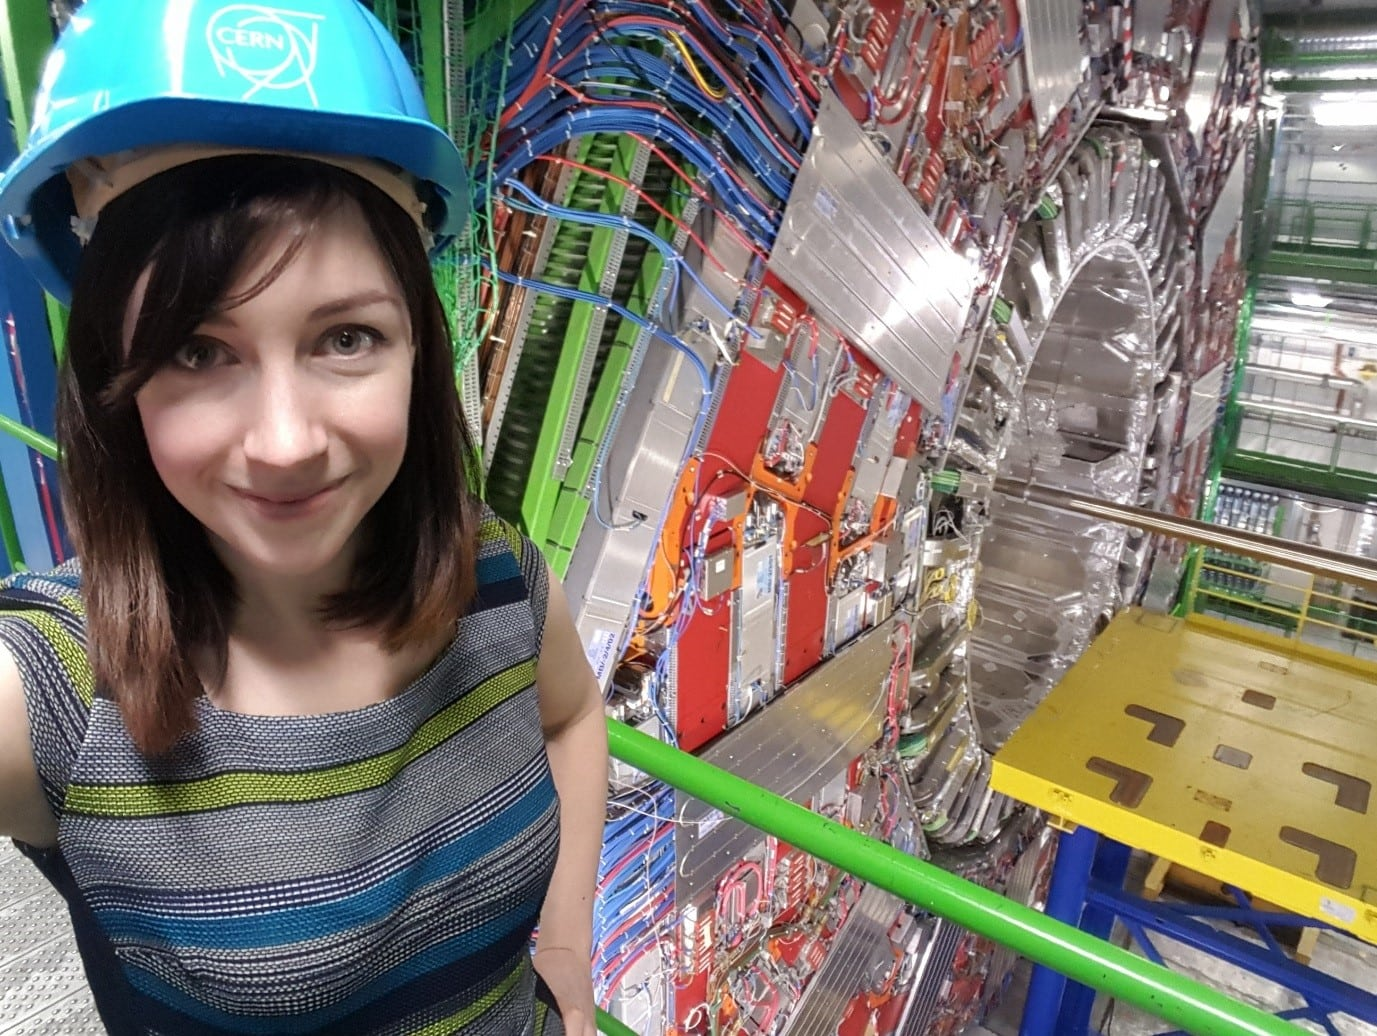 Orla Kelly at the CMS detector, one of the main detectors in the LHC at CERN